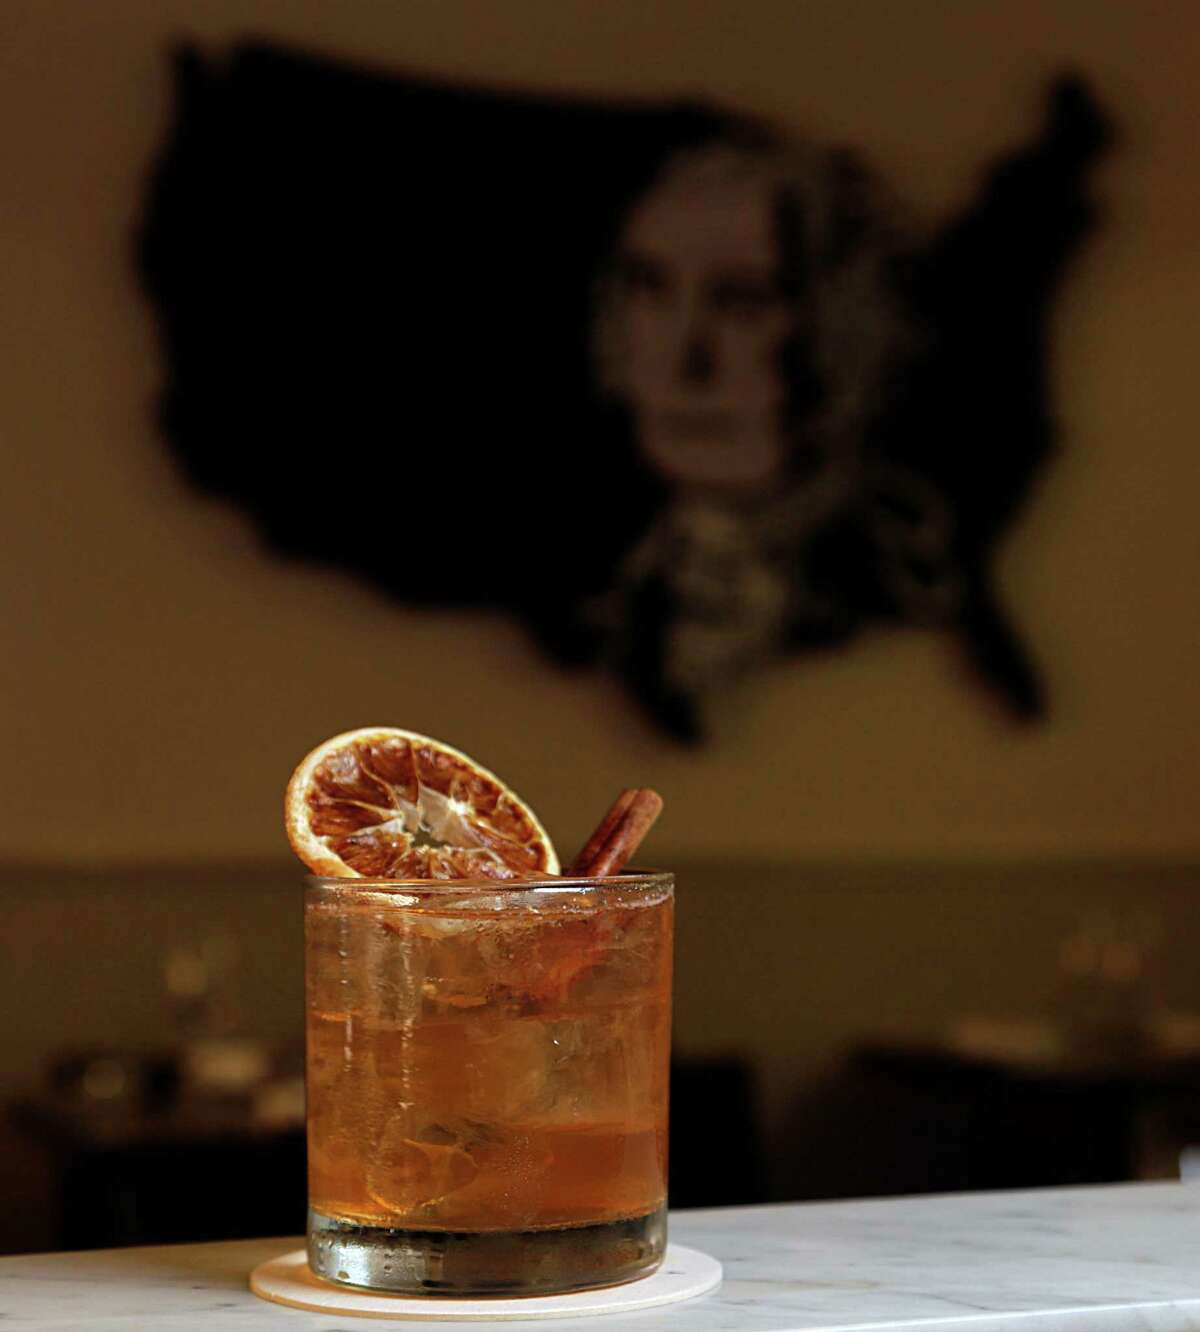 The Golden Girl cocktail, a take on hot butttered rum, was created by Judith Piotrowski at Pax Americana.